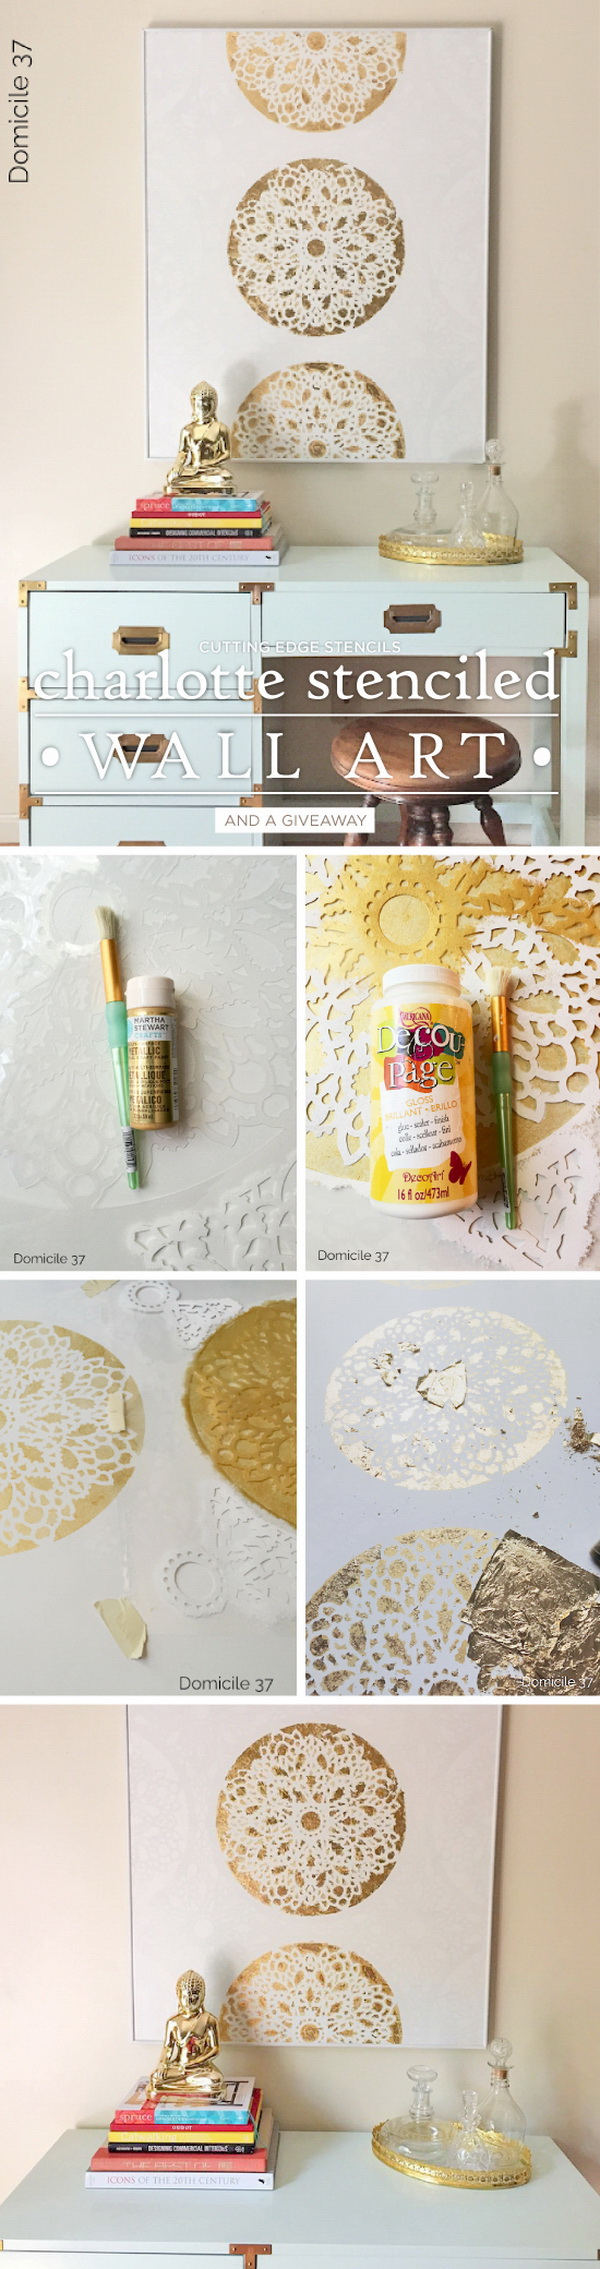 25 stunning diy wall art ideas tutorials for creative juice